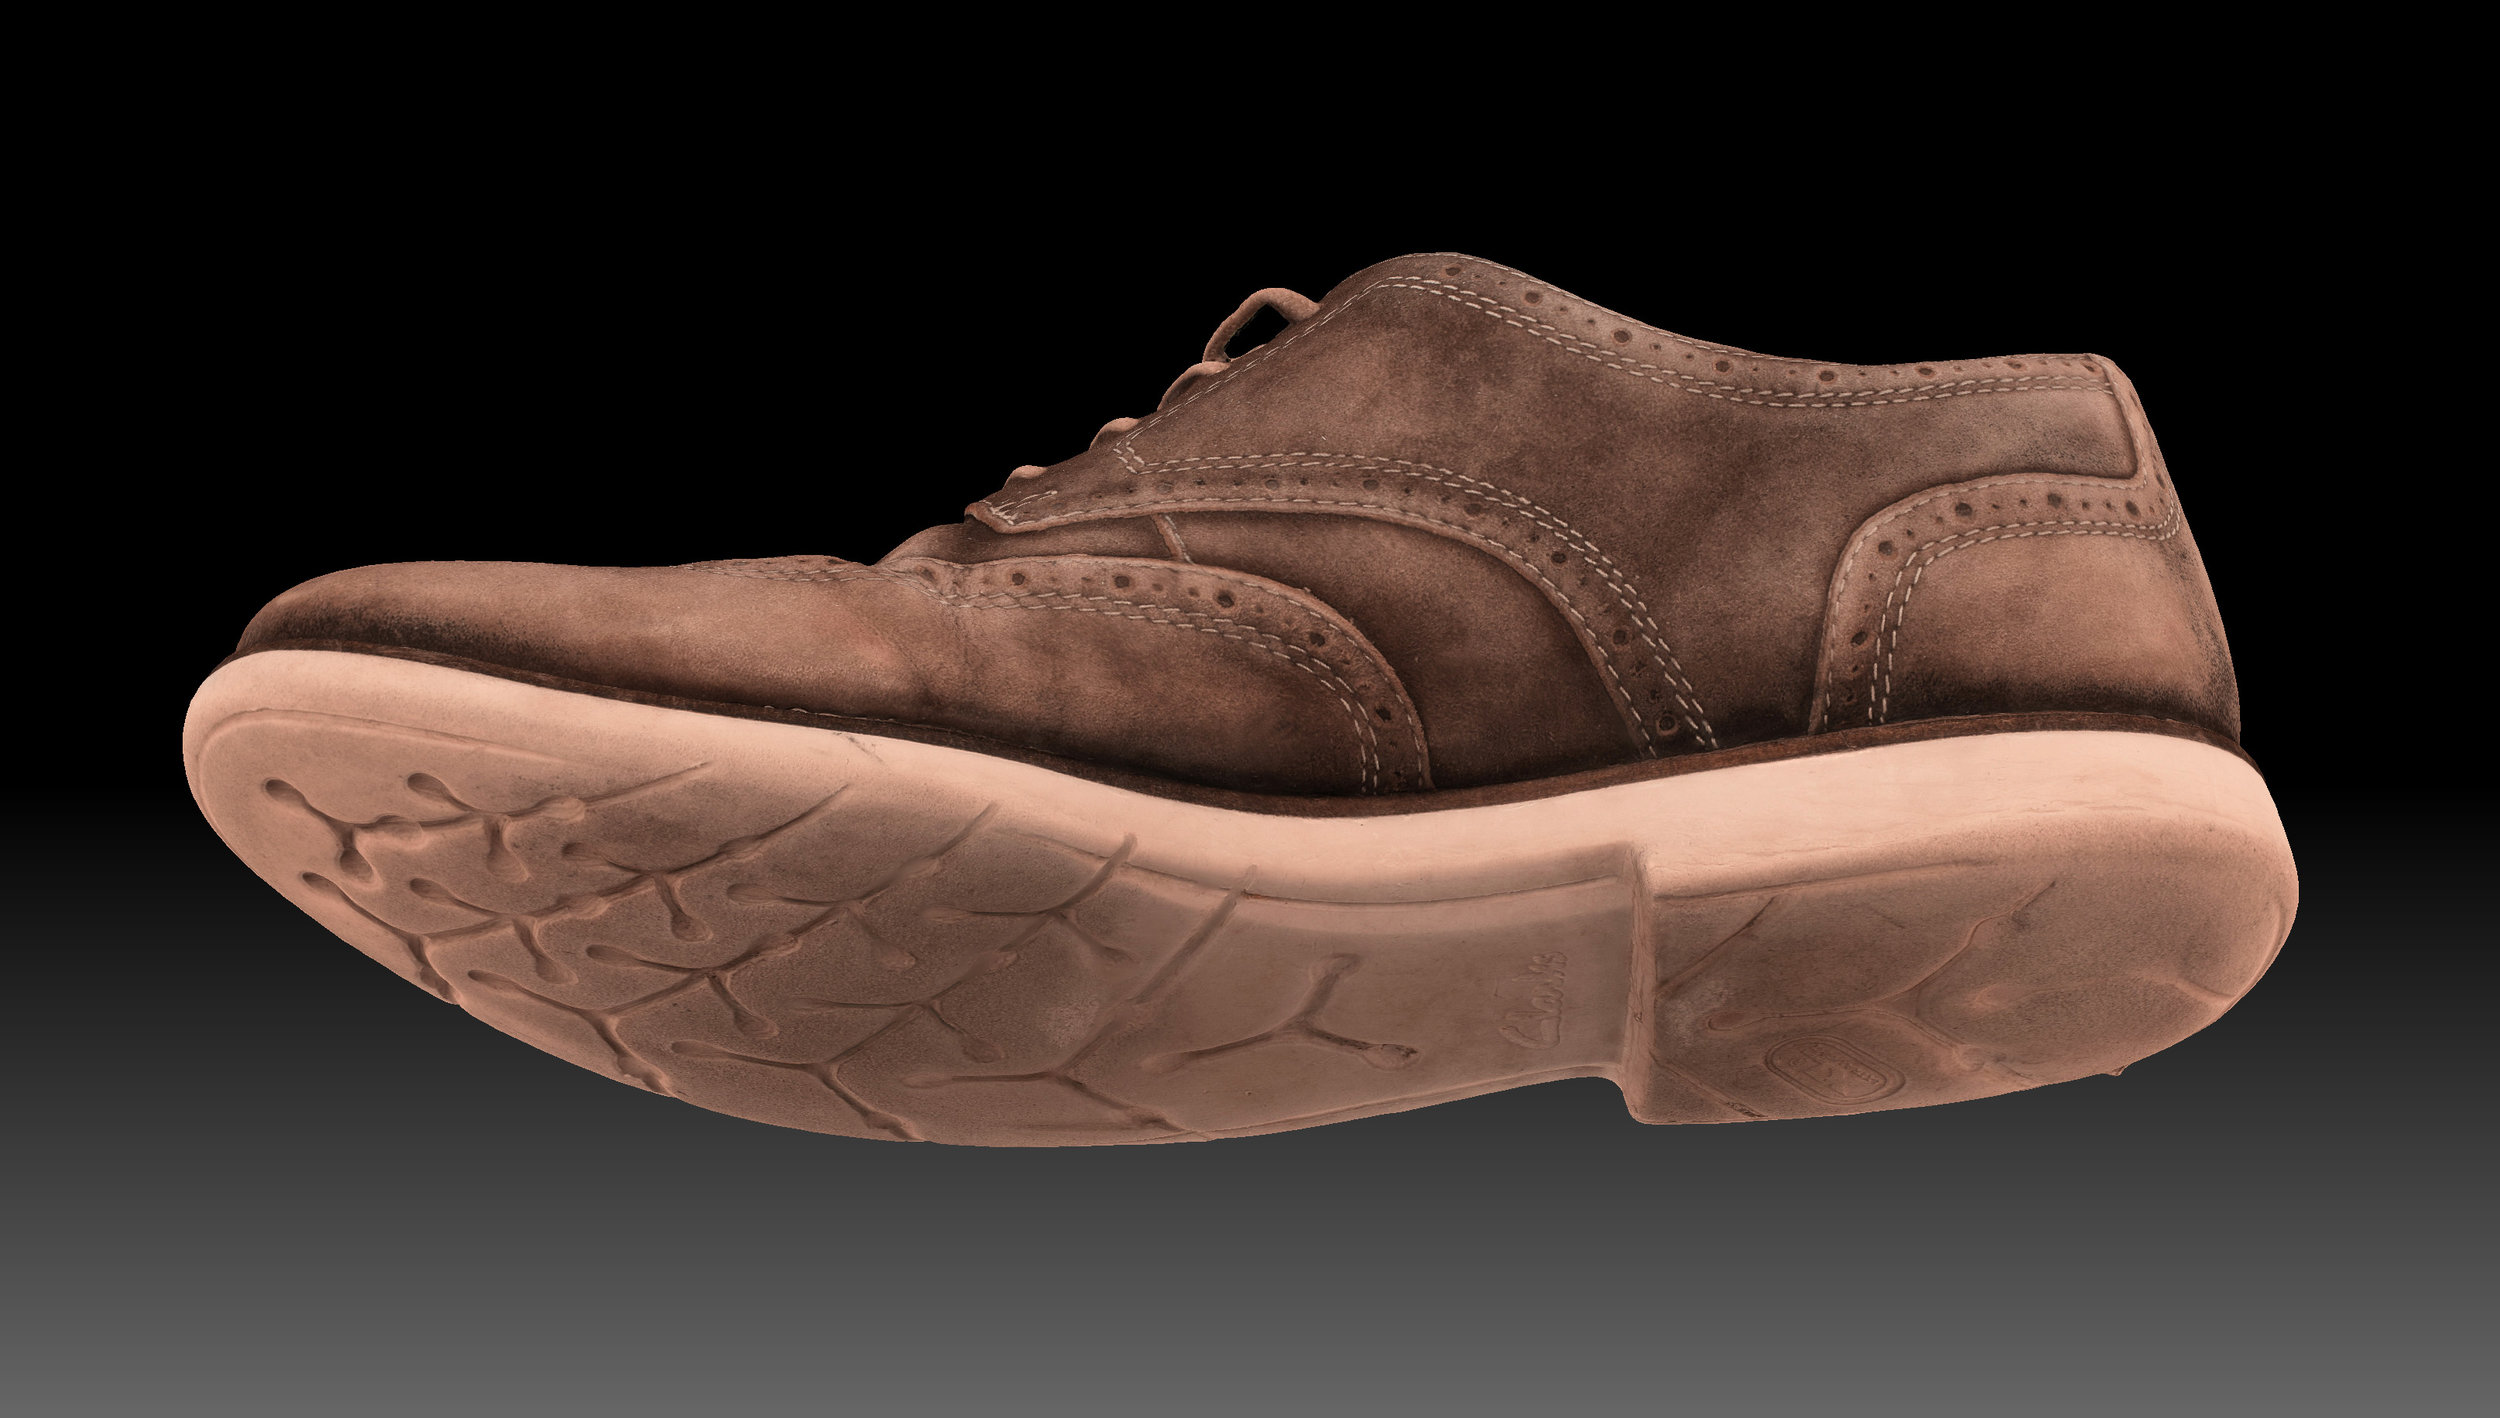 Shoe_03_Brown_03.jpg